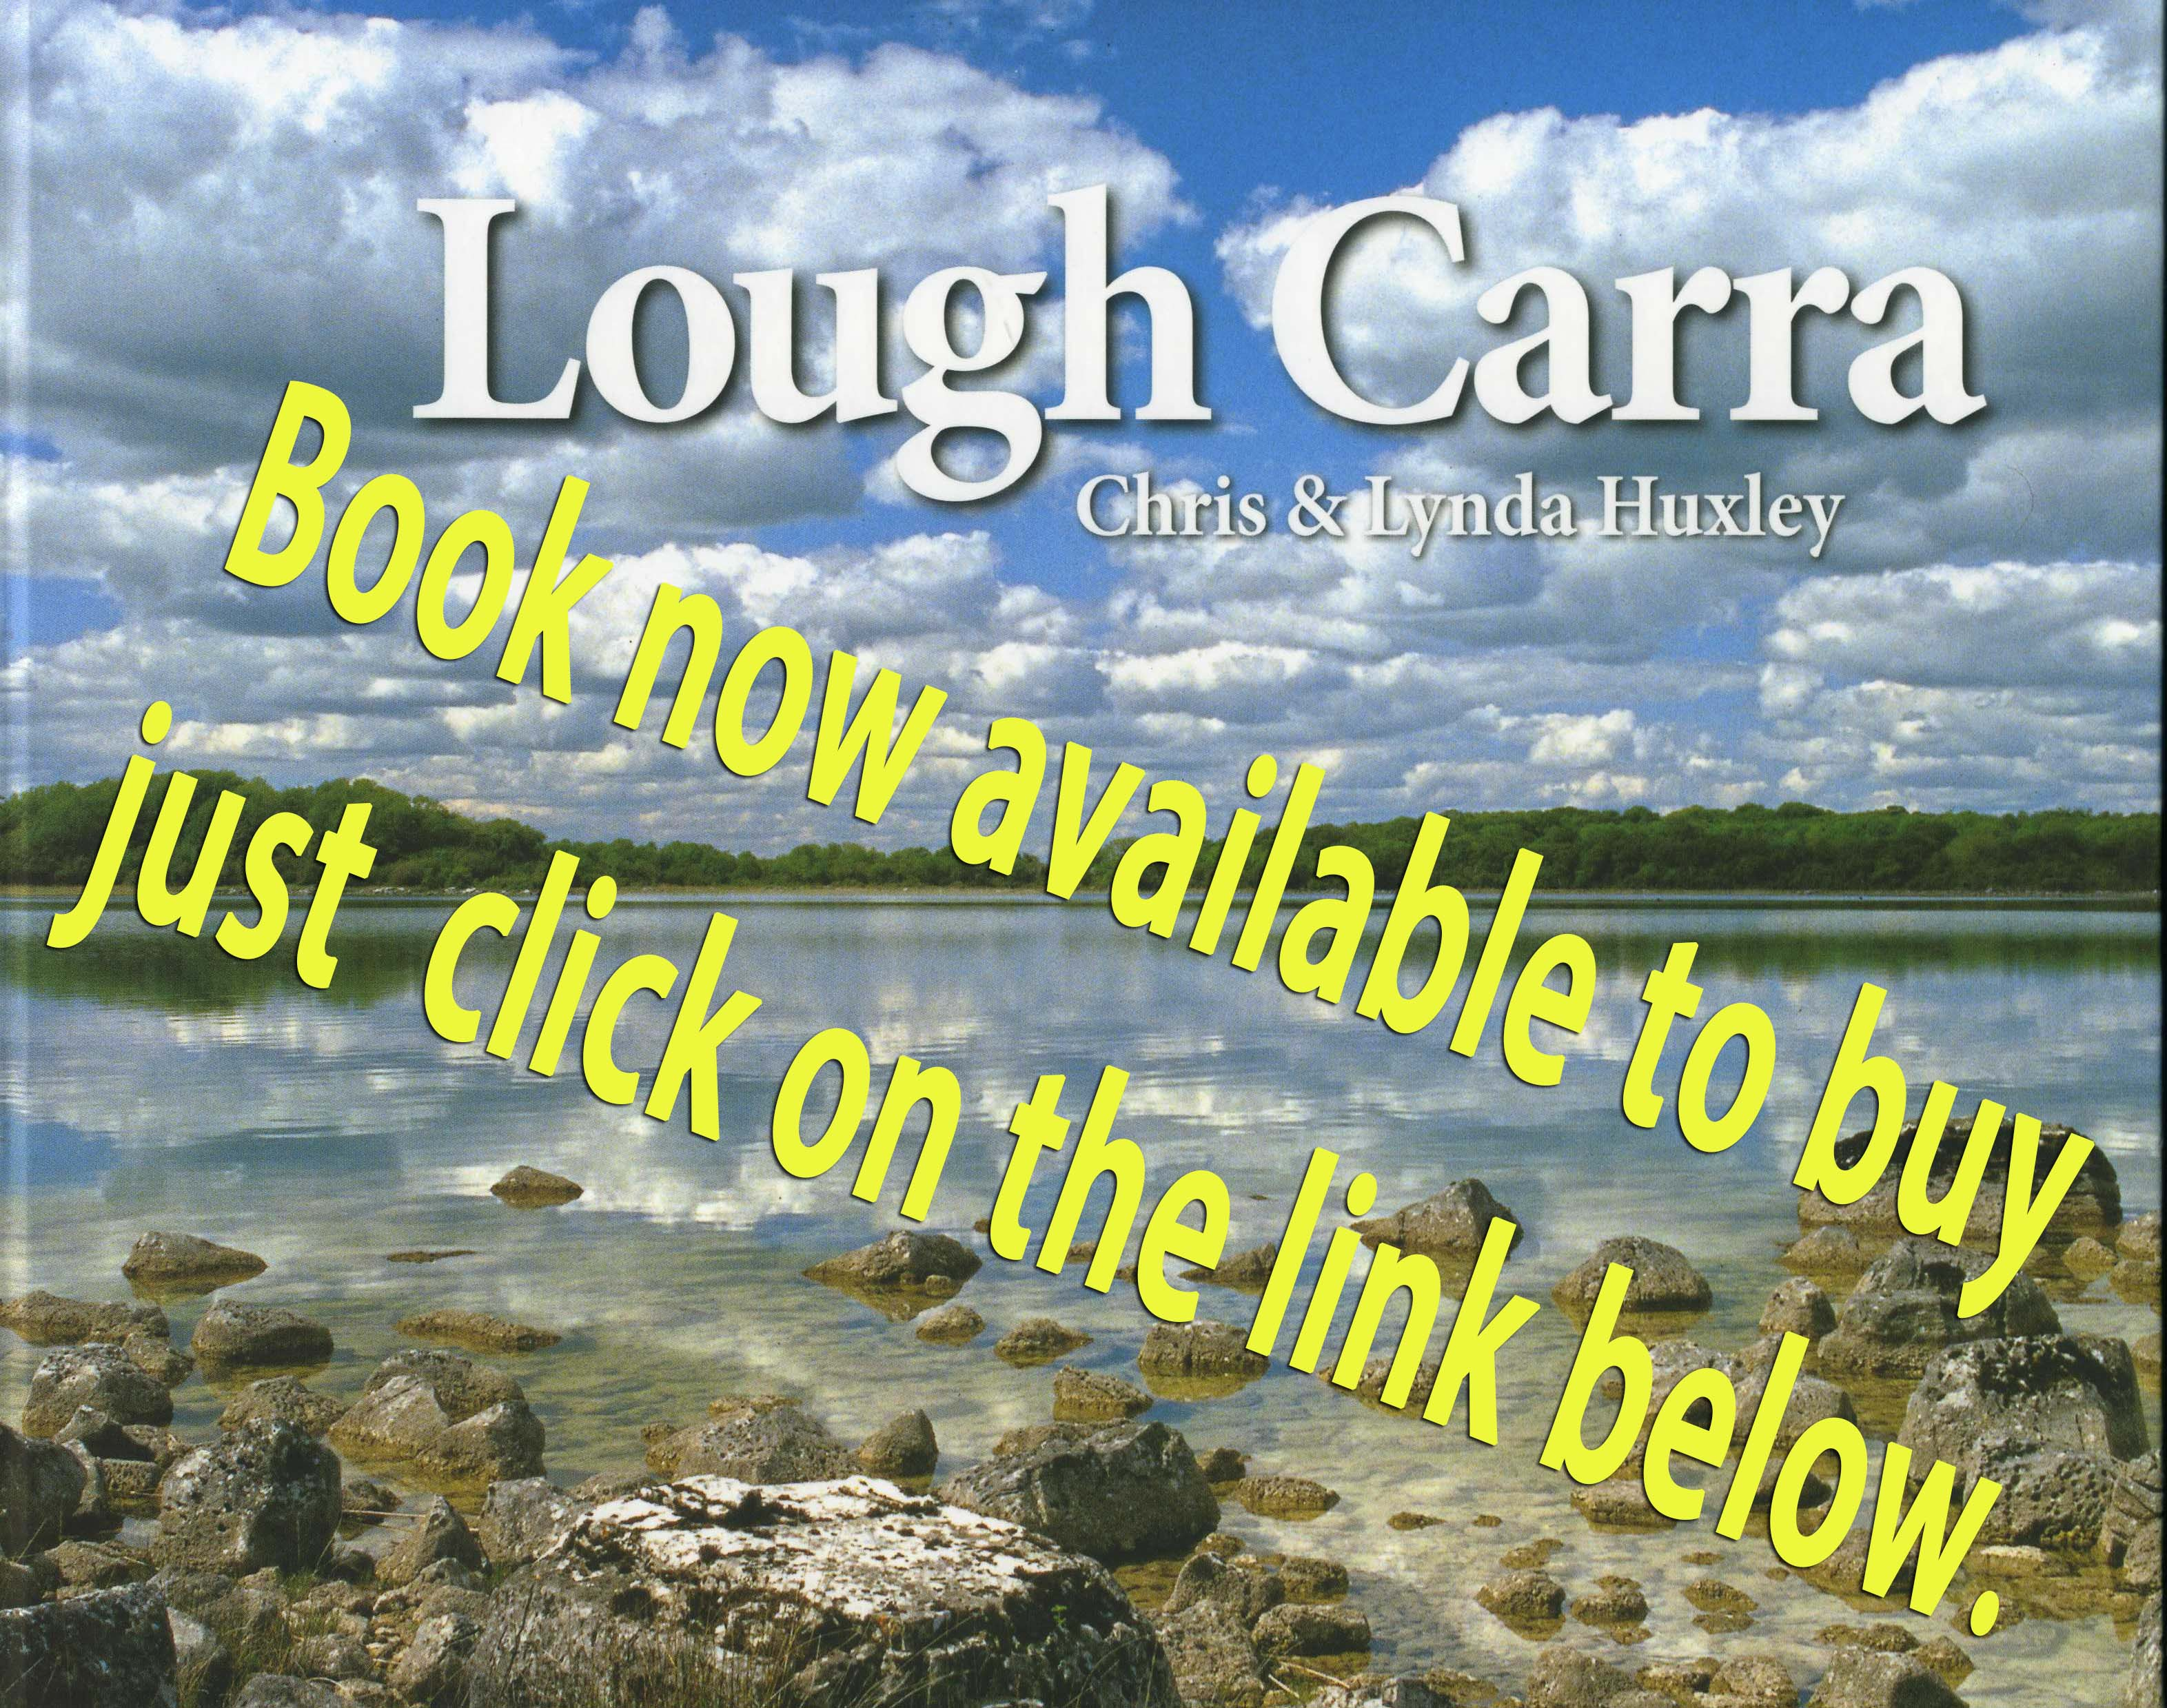 Lough Carra Book written by Chris and Lynda HuxleyLough Carra Book